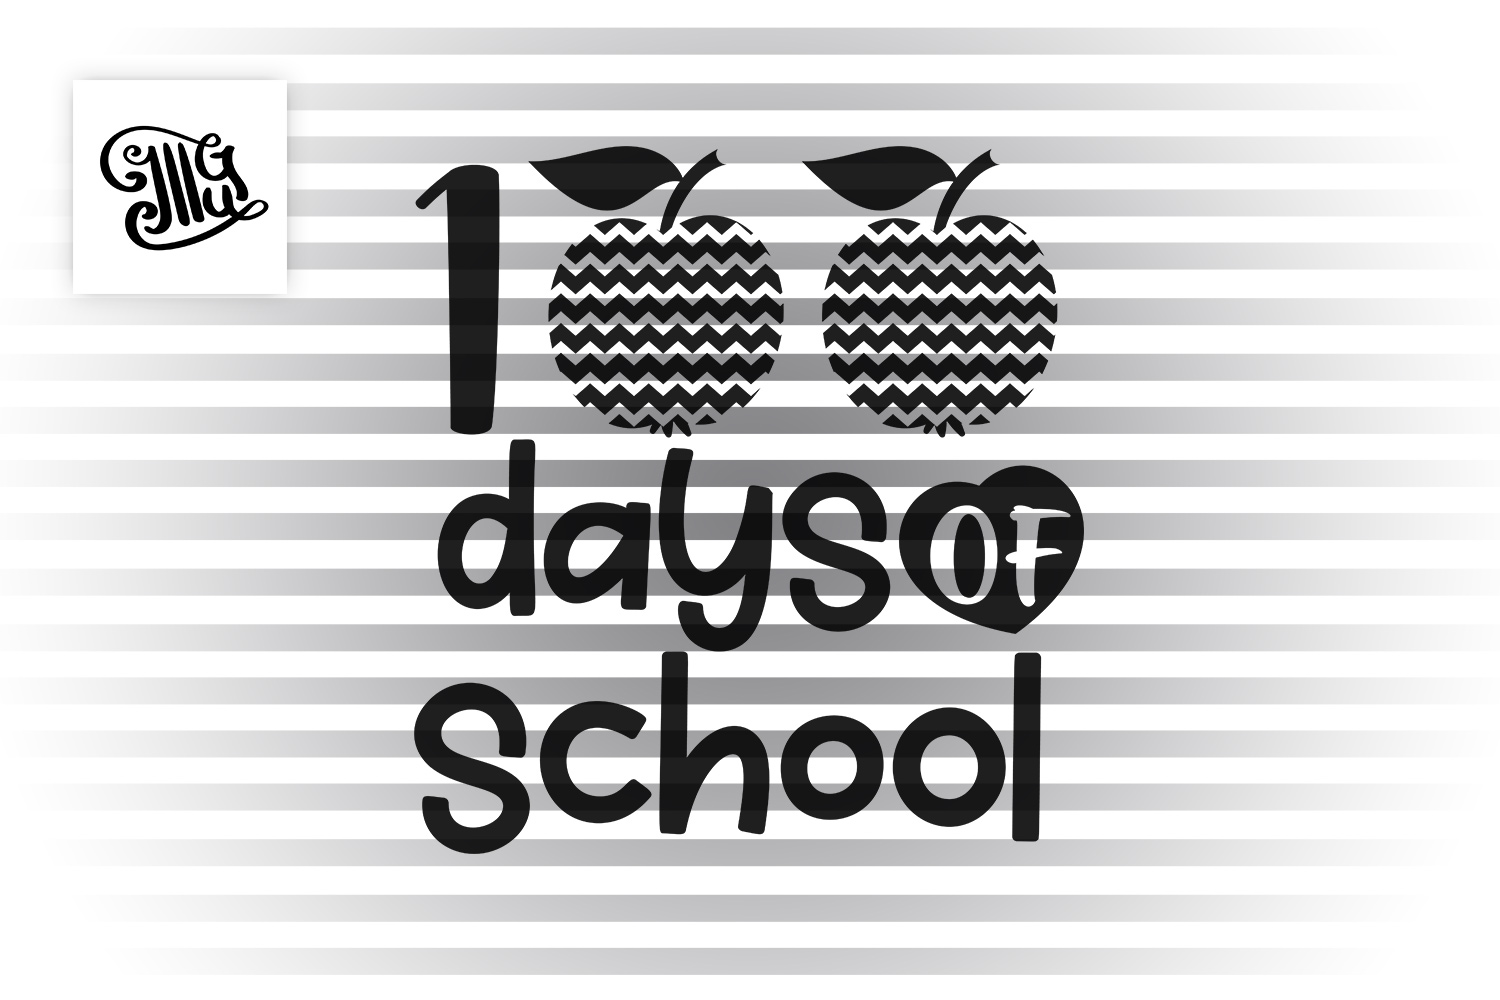 100 Days of school girls svg example image 2